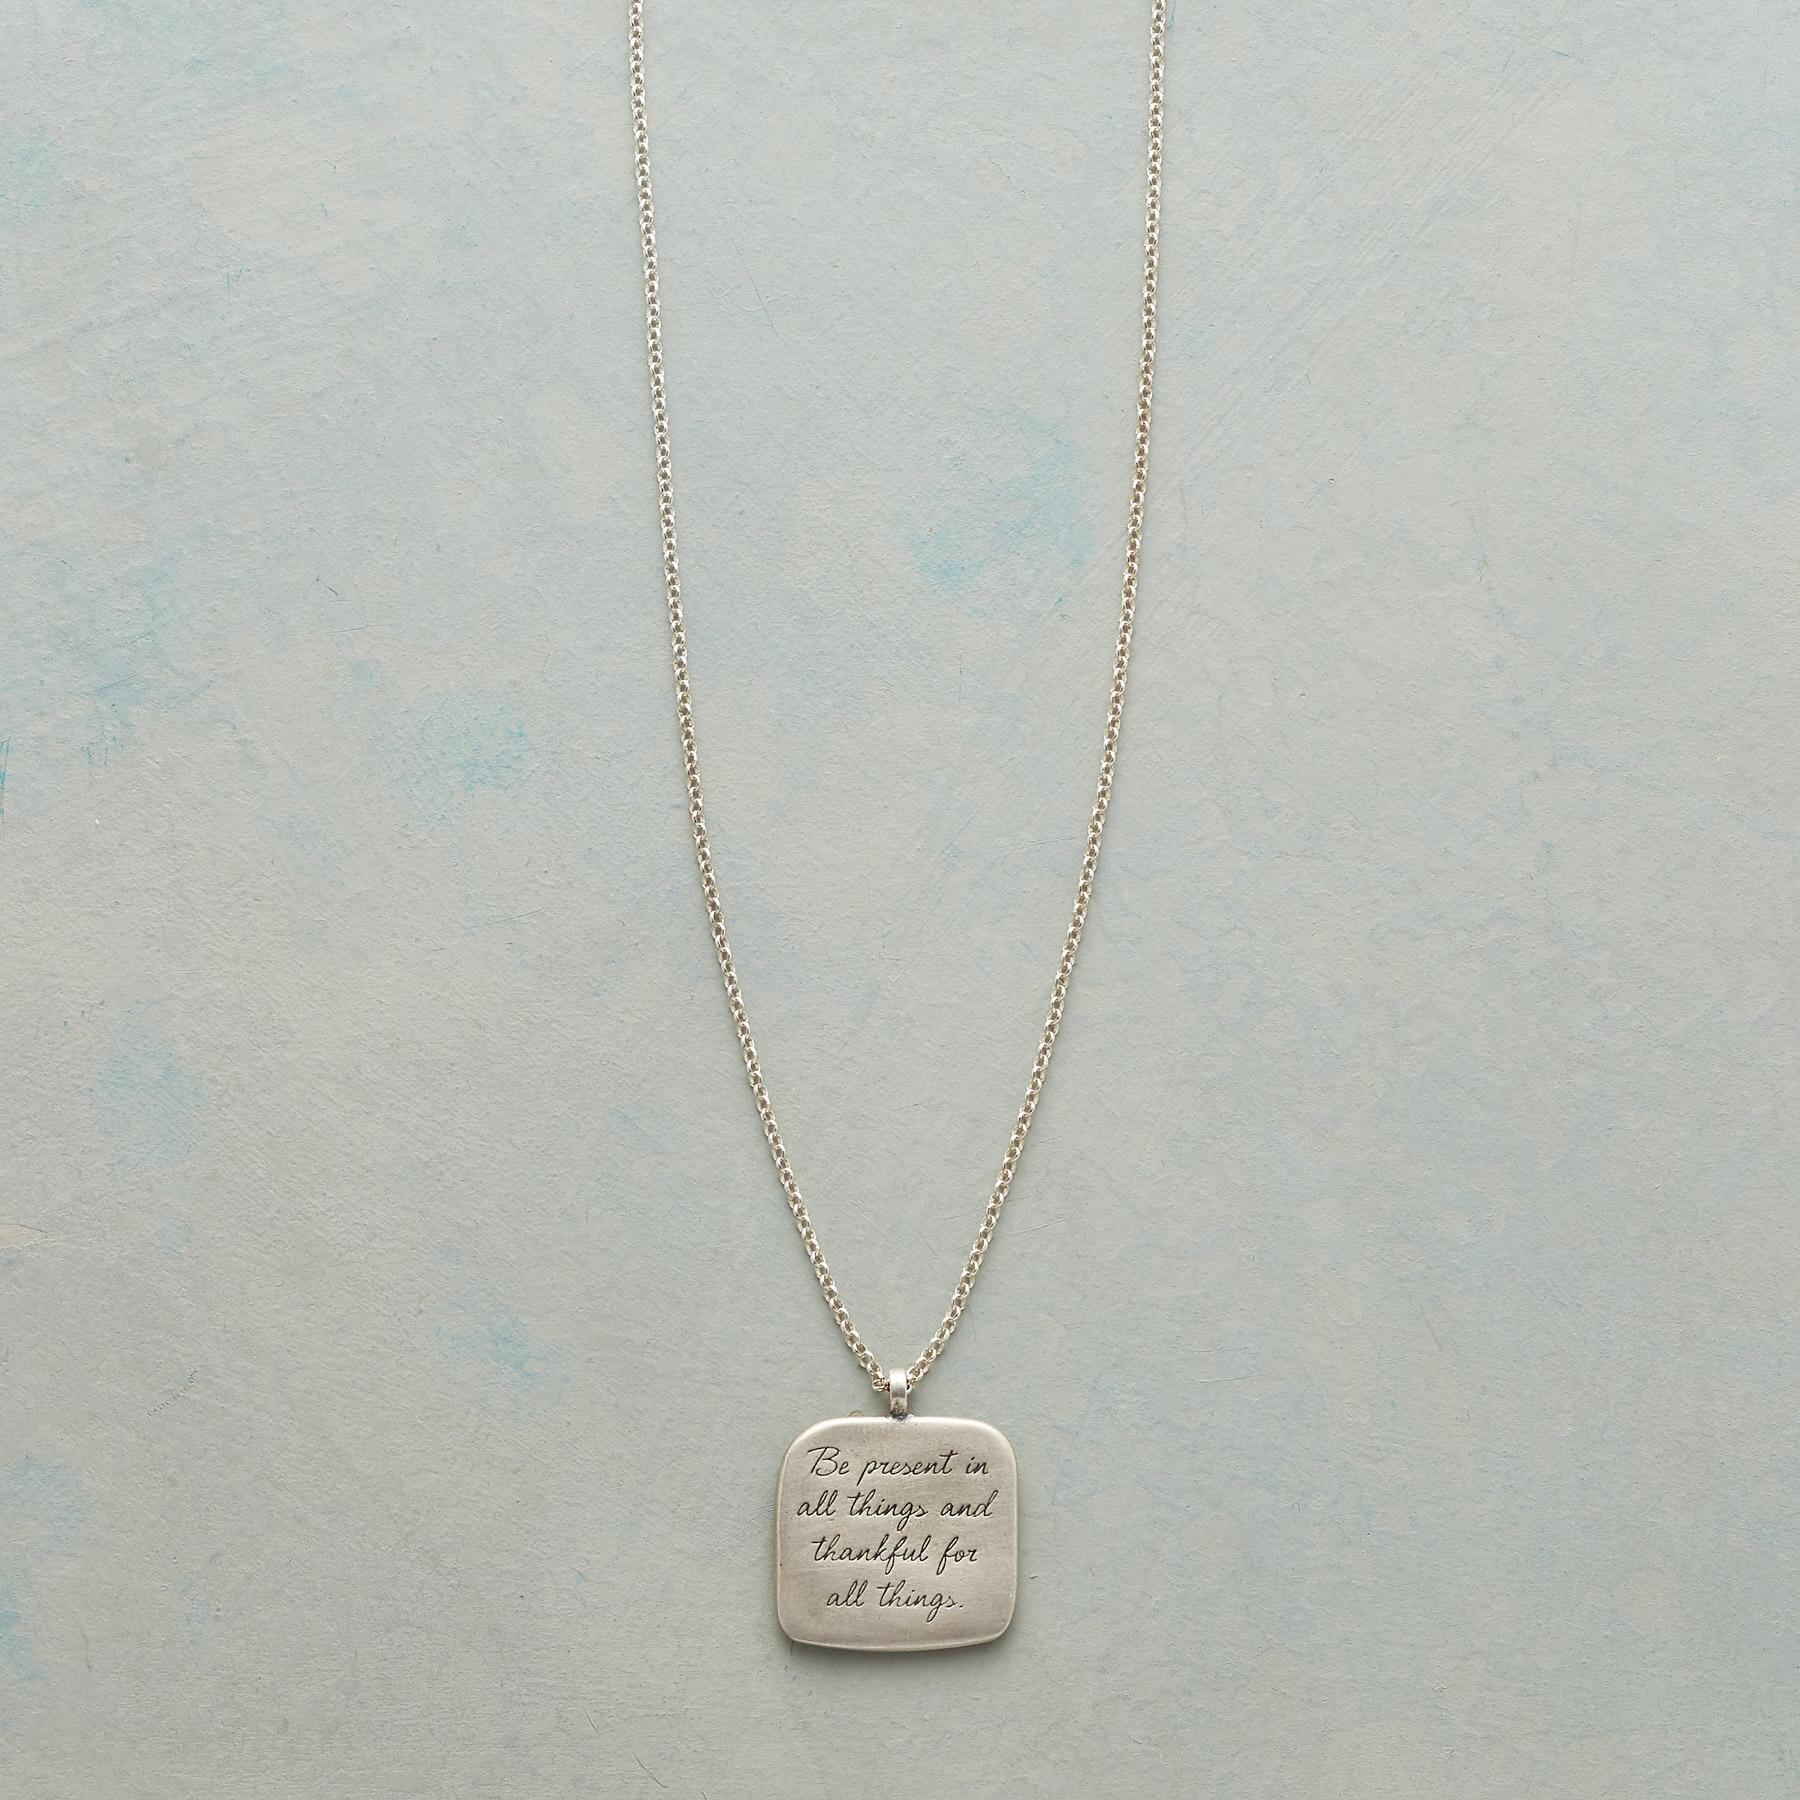 MAYA ANGELOU SILVER BE PRESENT NECKLACE: View 1